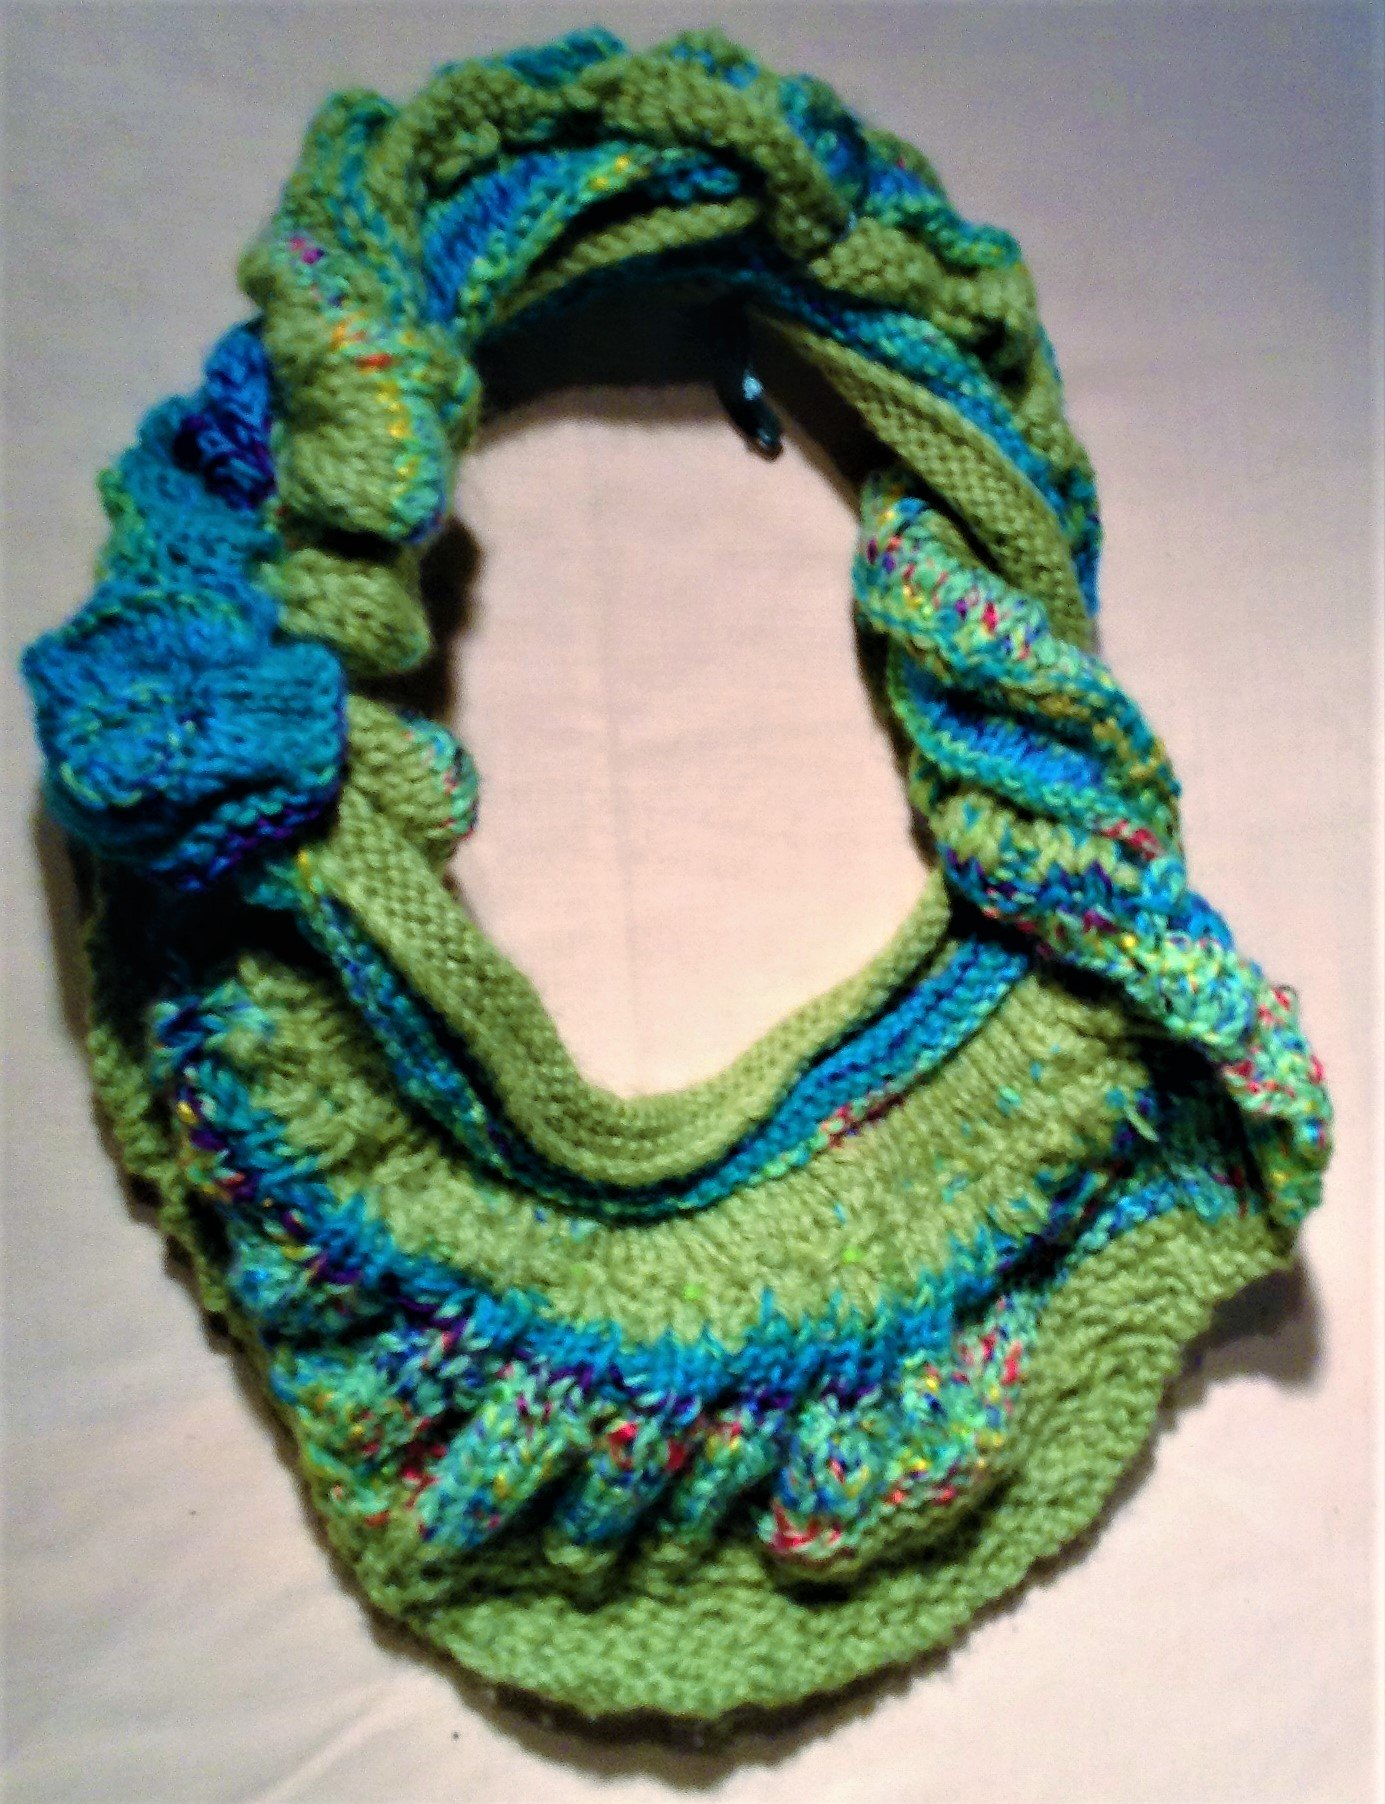 Scarf Infinite Spring Infinity Scarf Mini Shawl Greens And